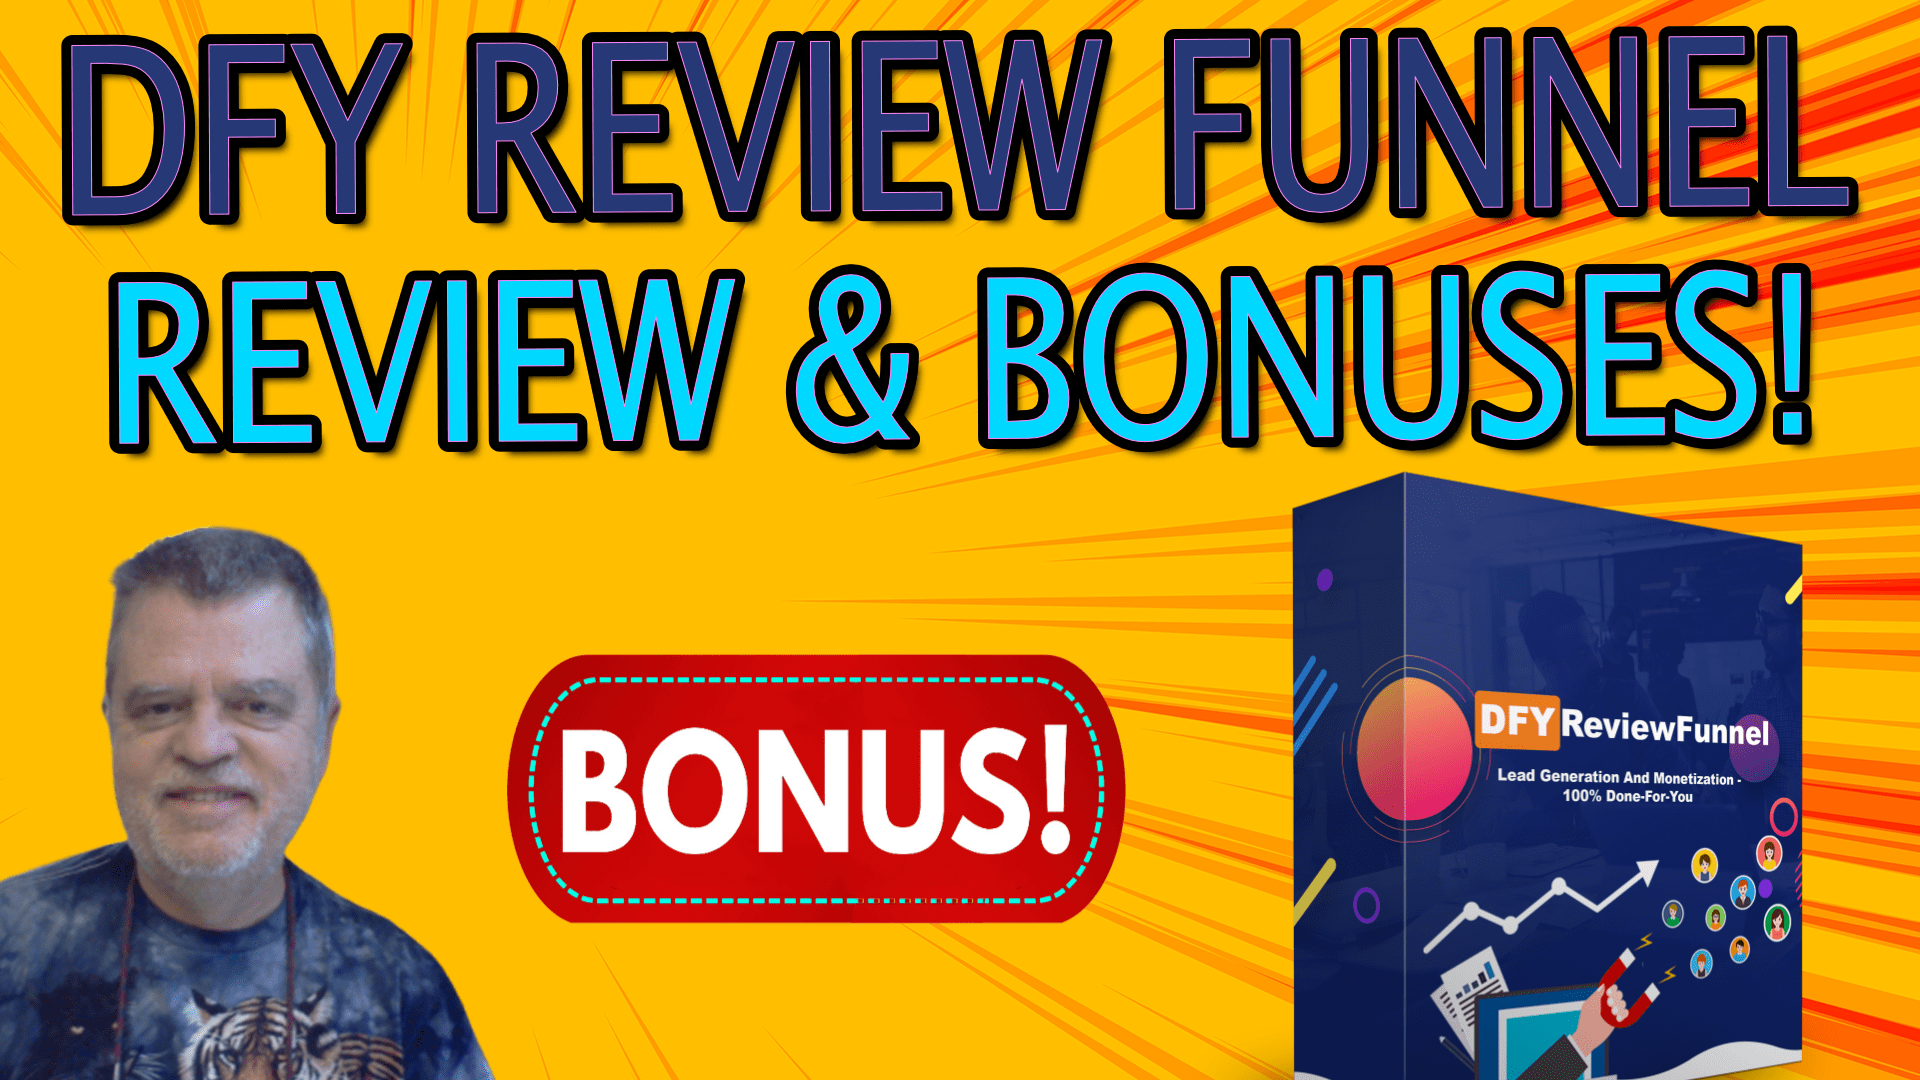 DFY REVIEW FUNNEL – REVIEW